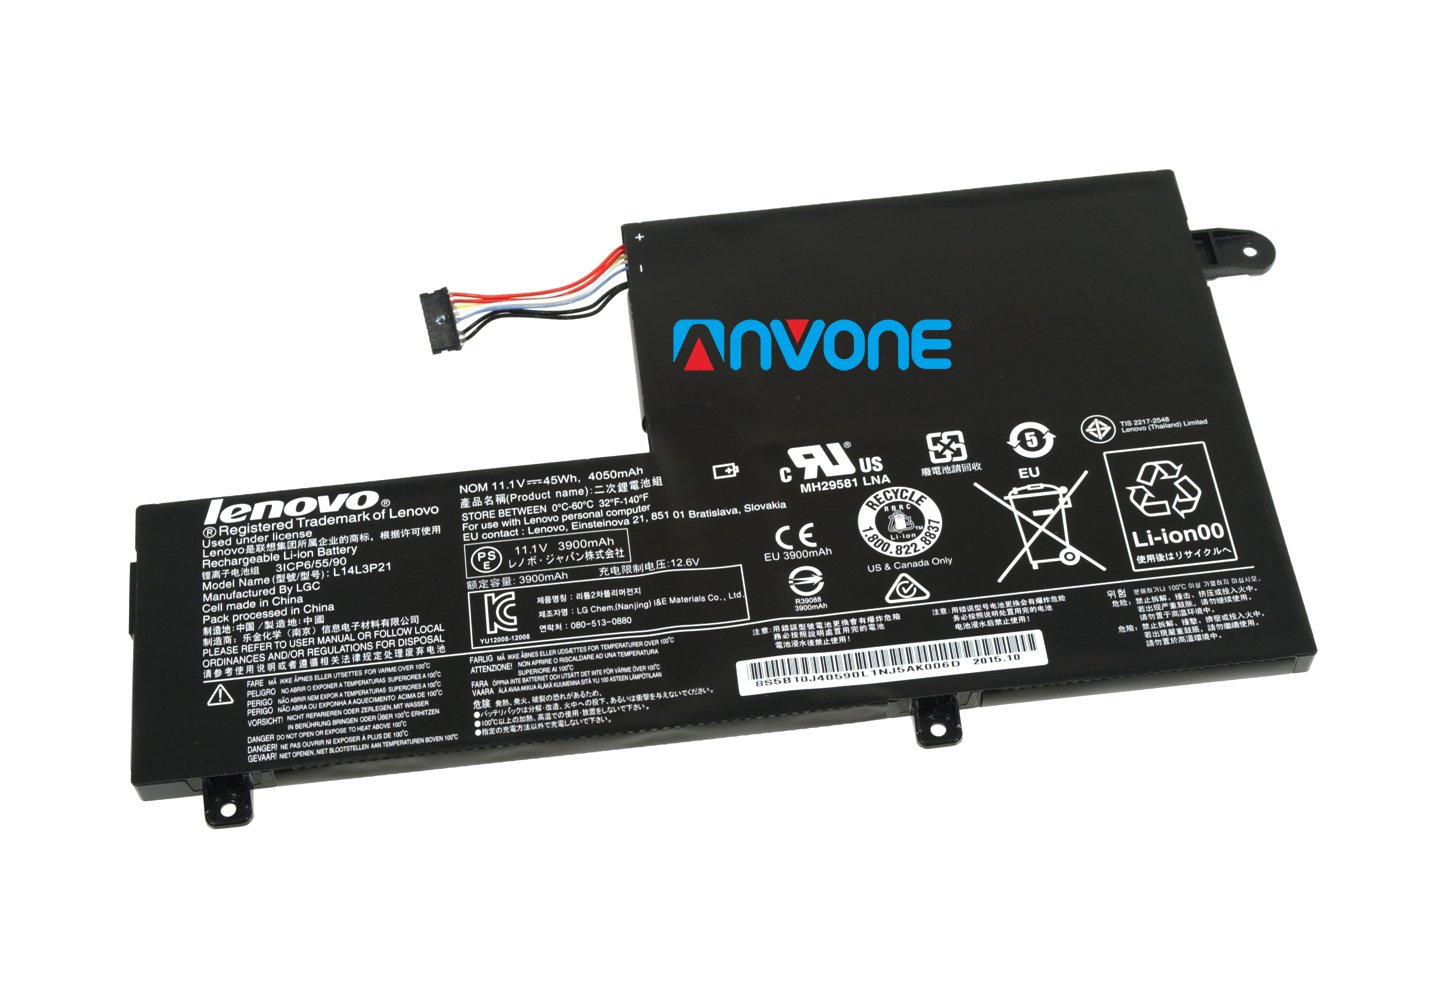 L14L3P21 5B10K10214 Battery For Lenovo FLEX 3-1580 FLEX 3-1480